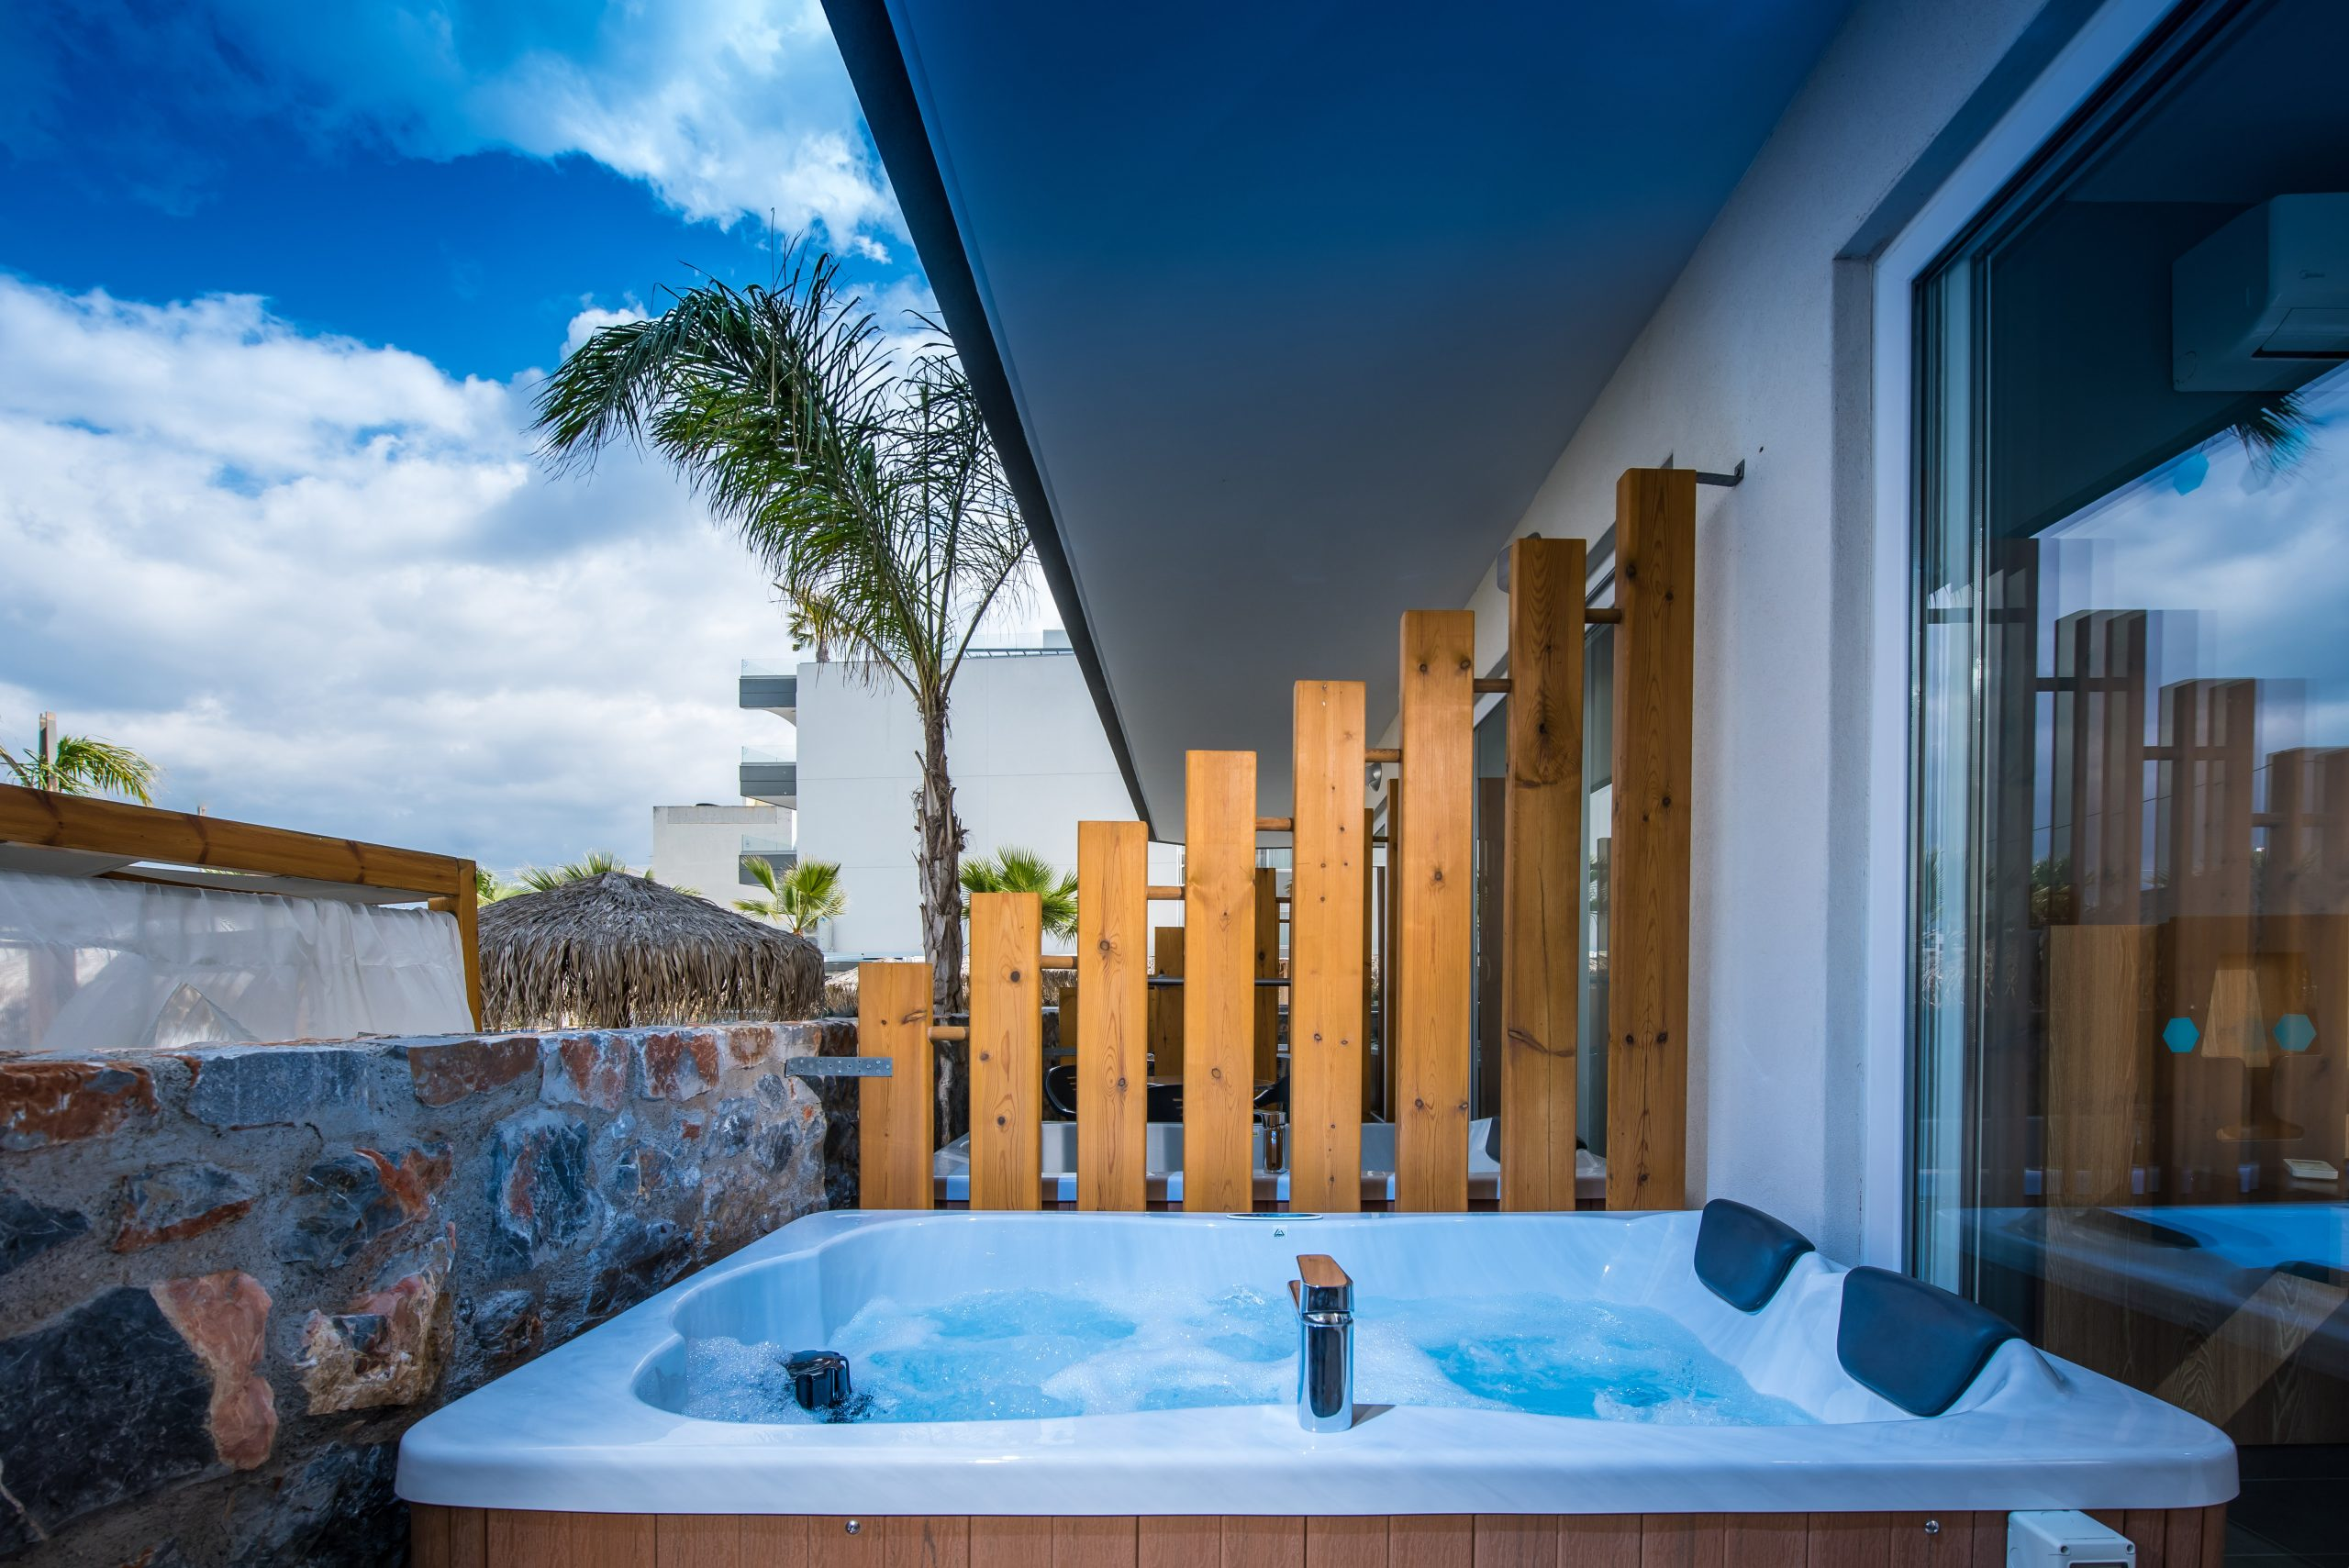 Superior triple room with outdoor jacuzzi